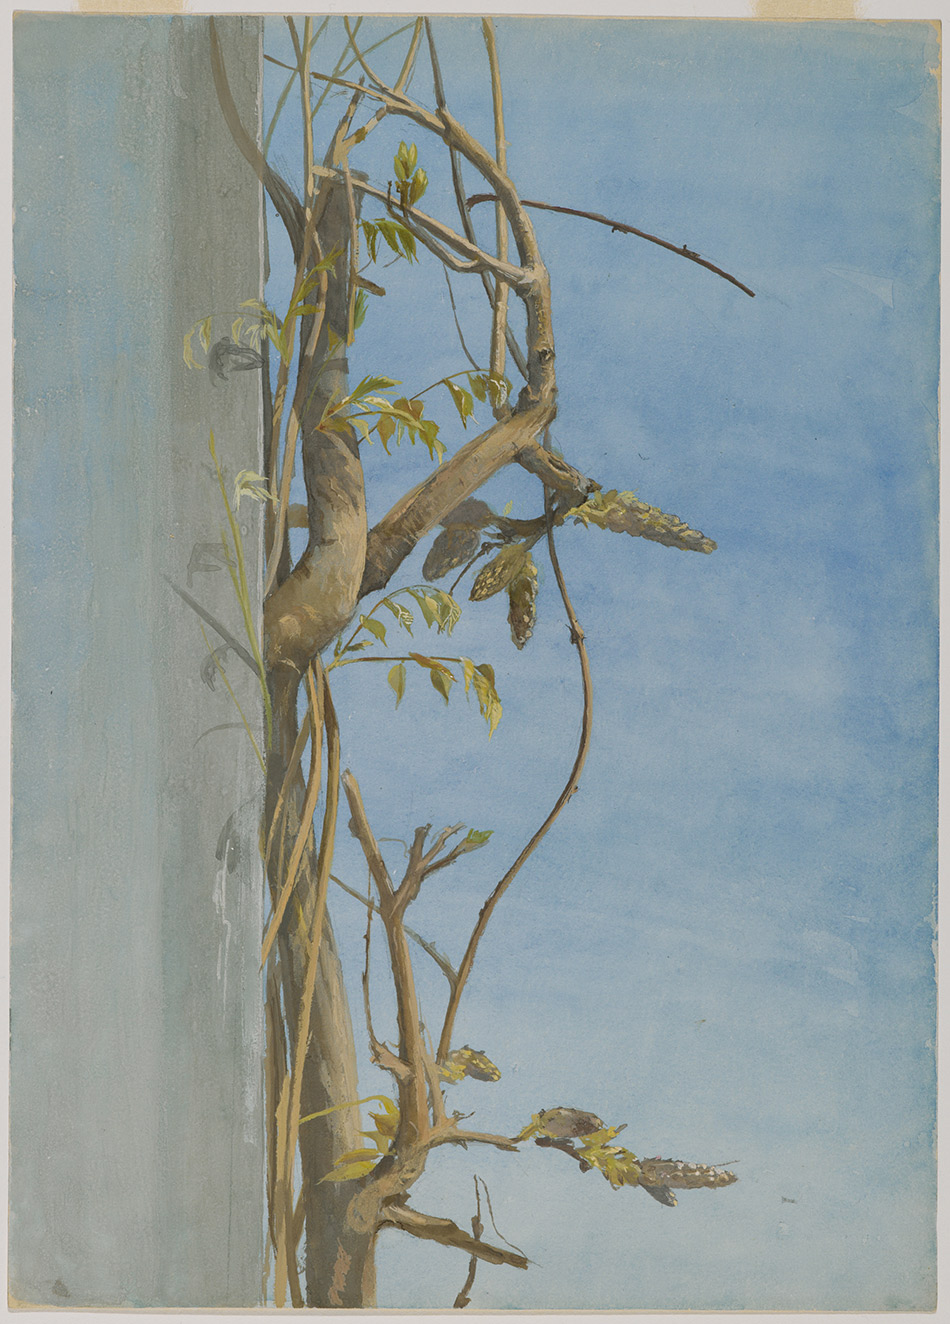 Fidelia-Bridges_Wisteria-ona-Wall_1870s_4104-013_Brooklyn-Museum_New-York_950w